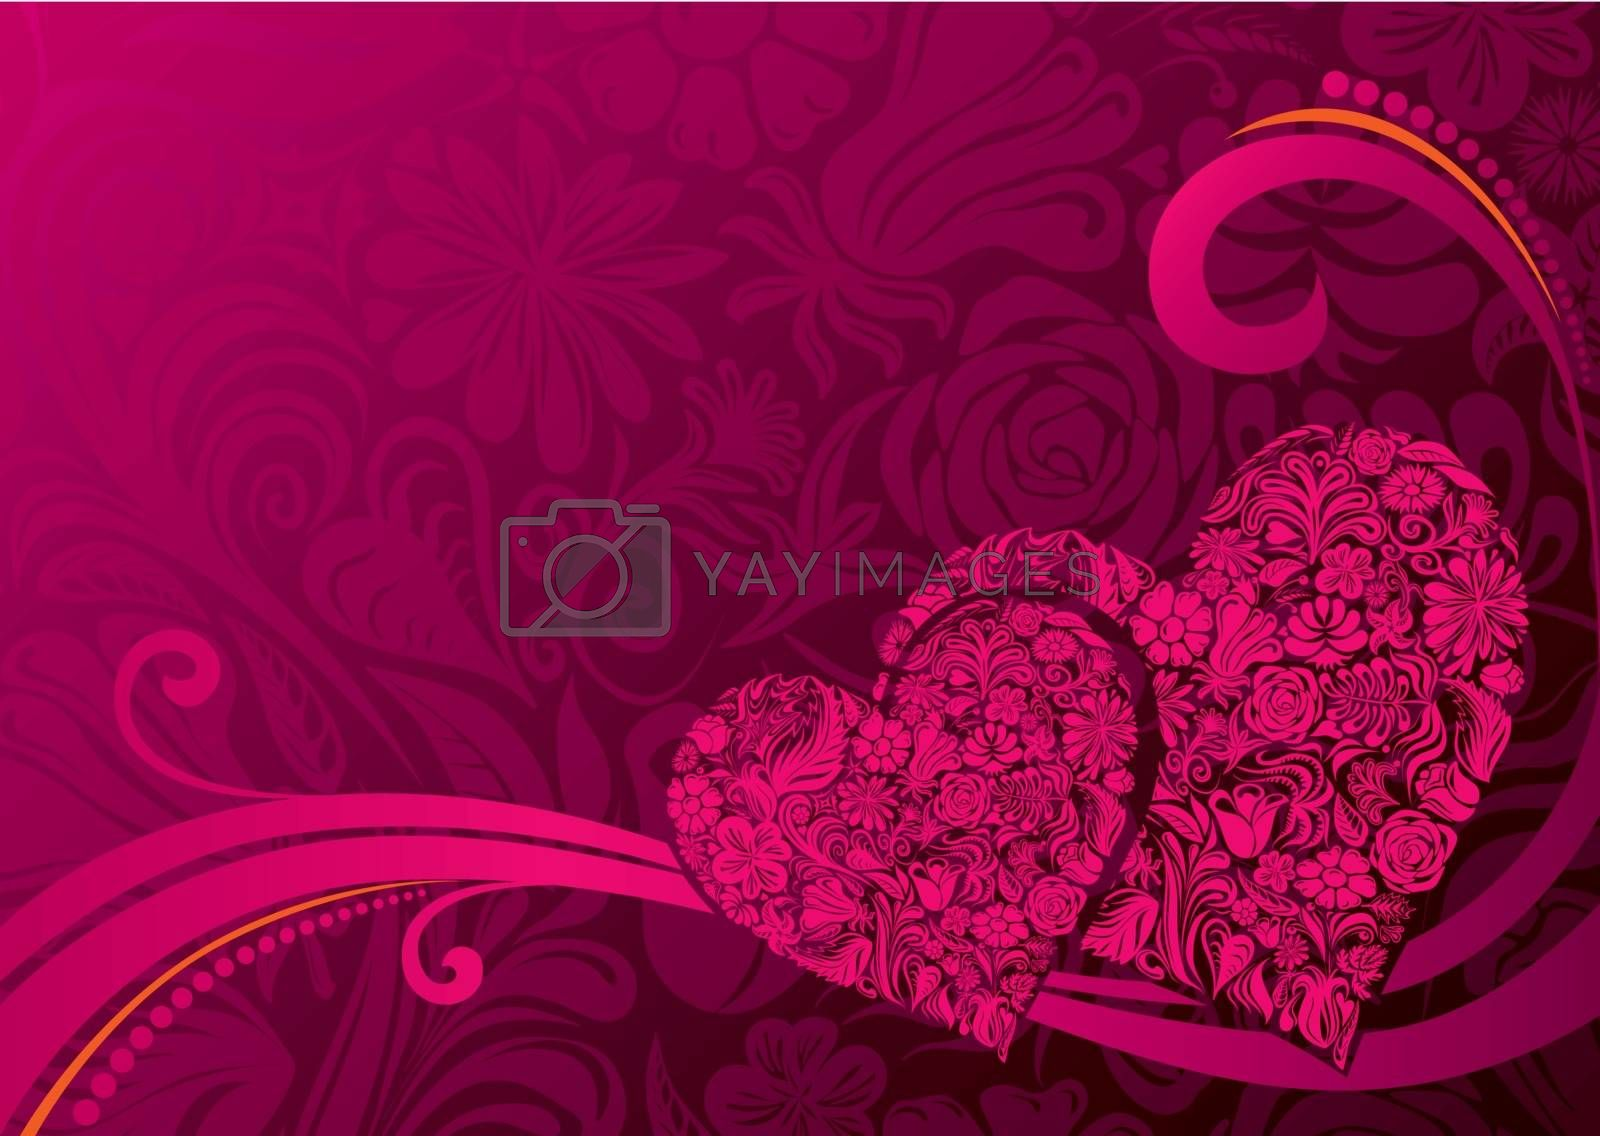 Two heart shapes consist of flowers. Eps8. CMYK. Layers organized. Gradients used.